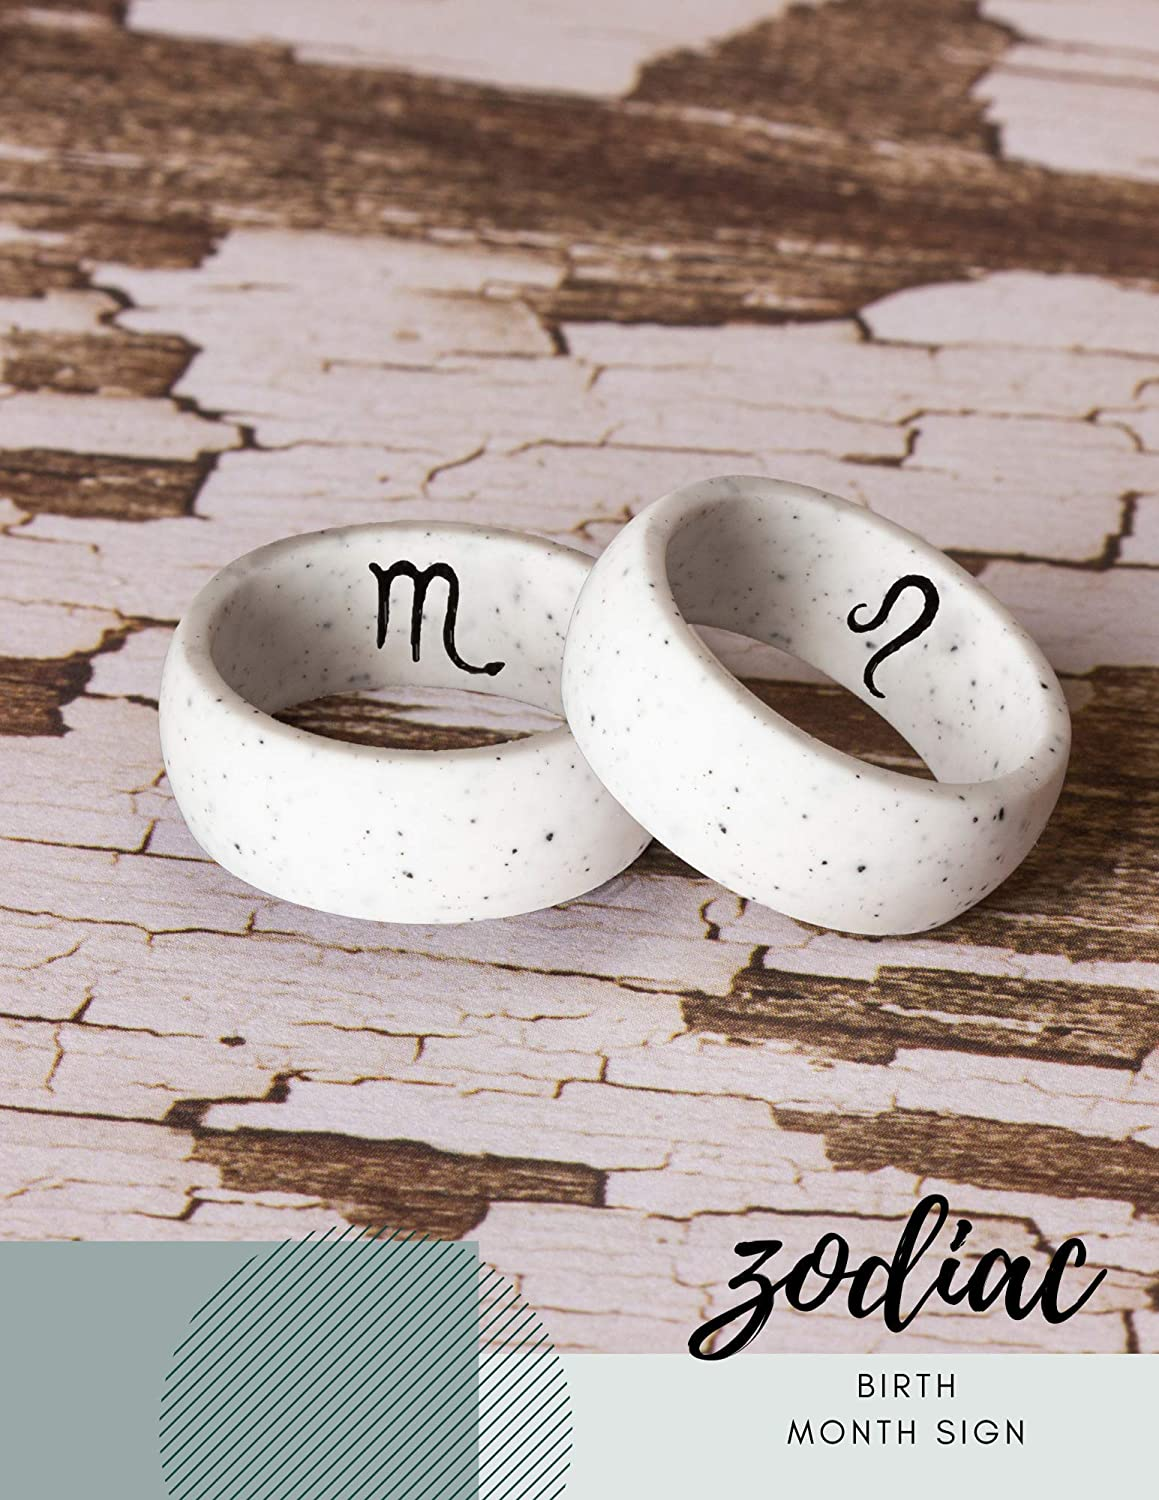 promise ring Breathable Rubber Couple Jewelry -Engagement rings Silicone Ring Wedding Band with Birth Month Zodiac Sign Engraving Non-Metal Rings for Men /& Women White Anniversary /& workout bands